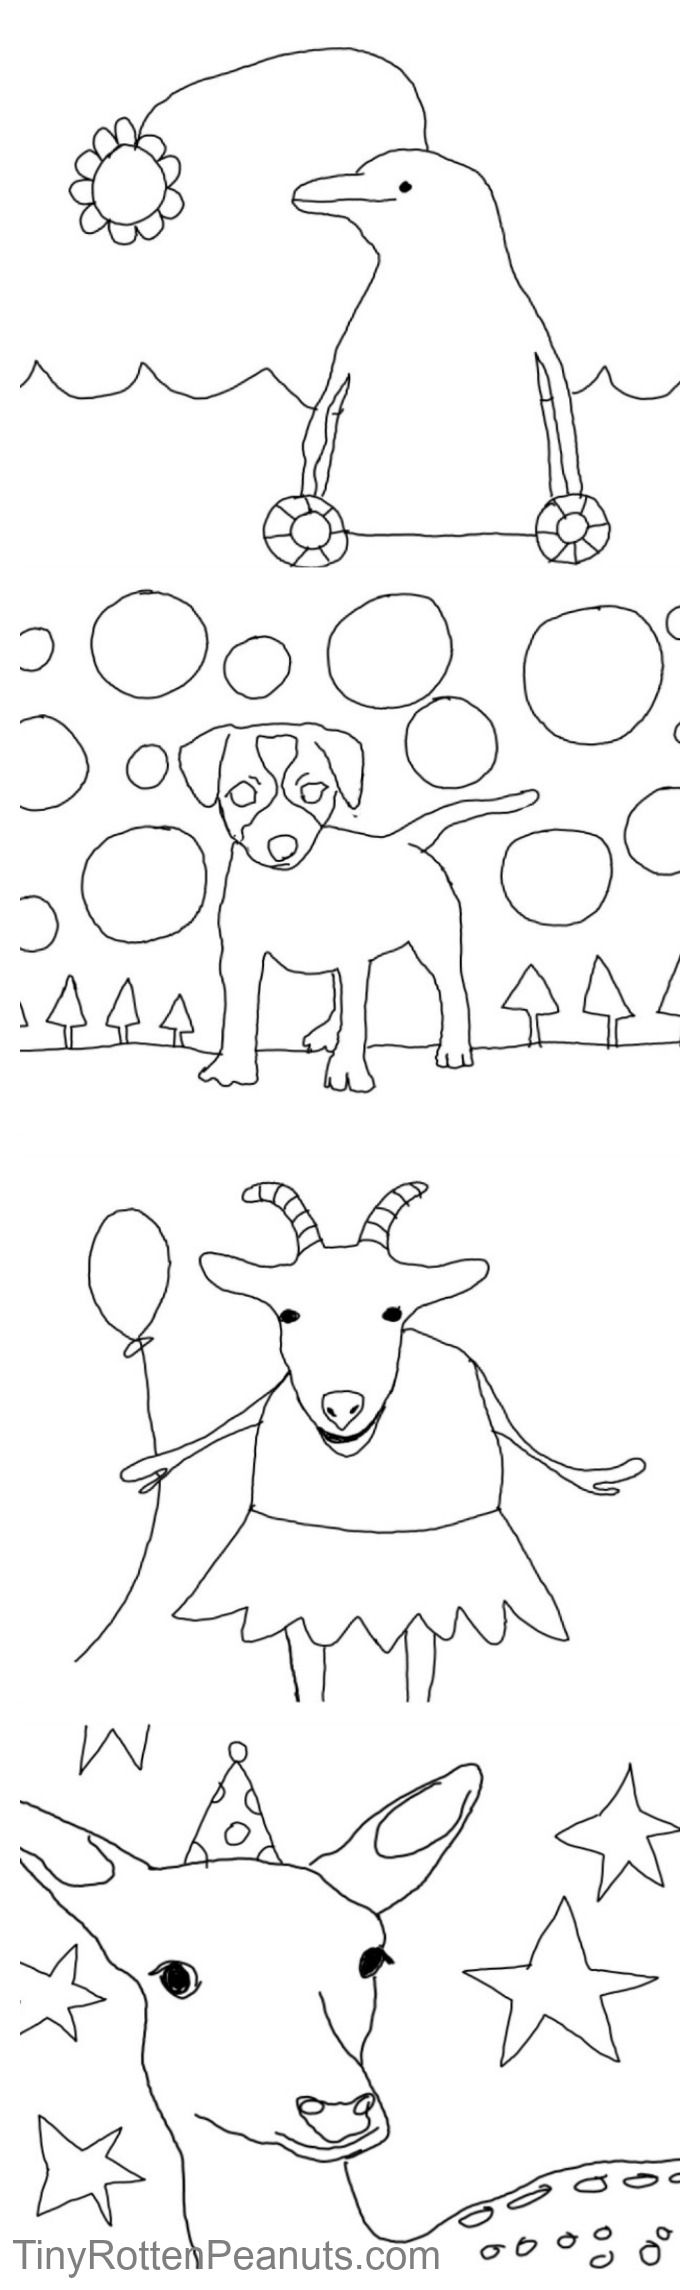 Free cool coloring pages from TinyRottenPeanuts.com using the HP Sprout #CIY #sproutbyhp